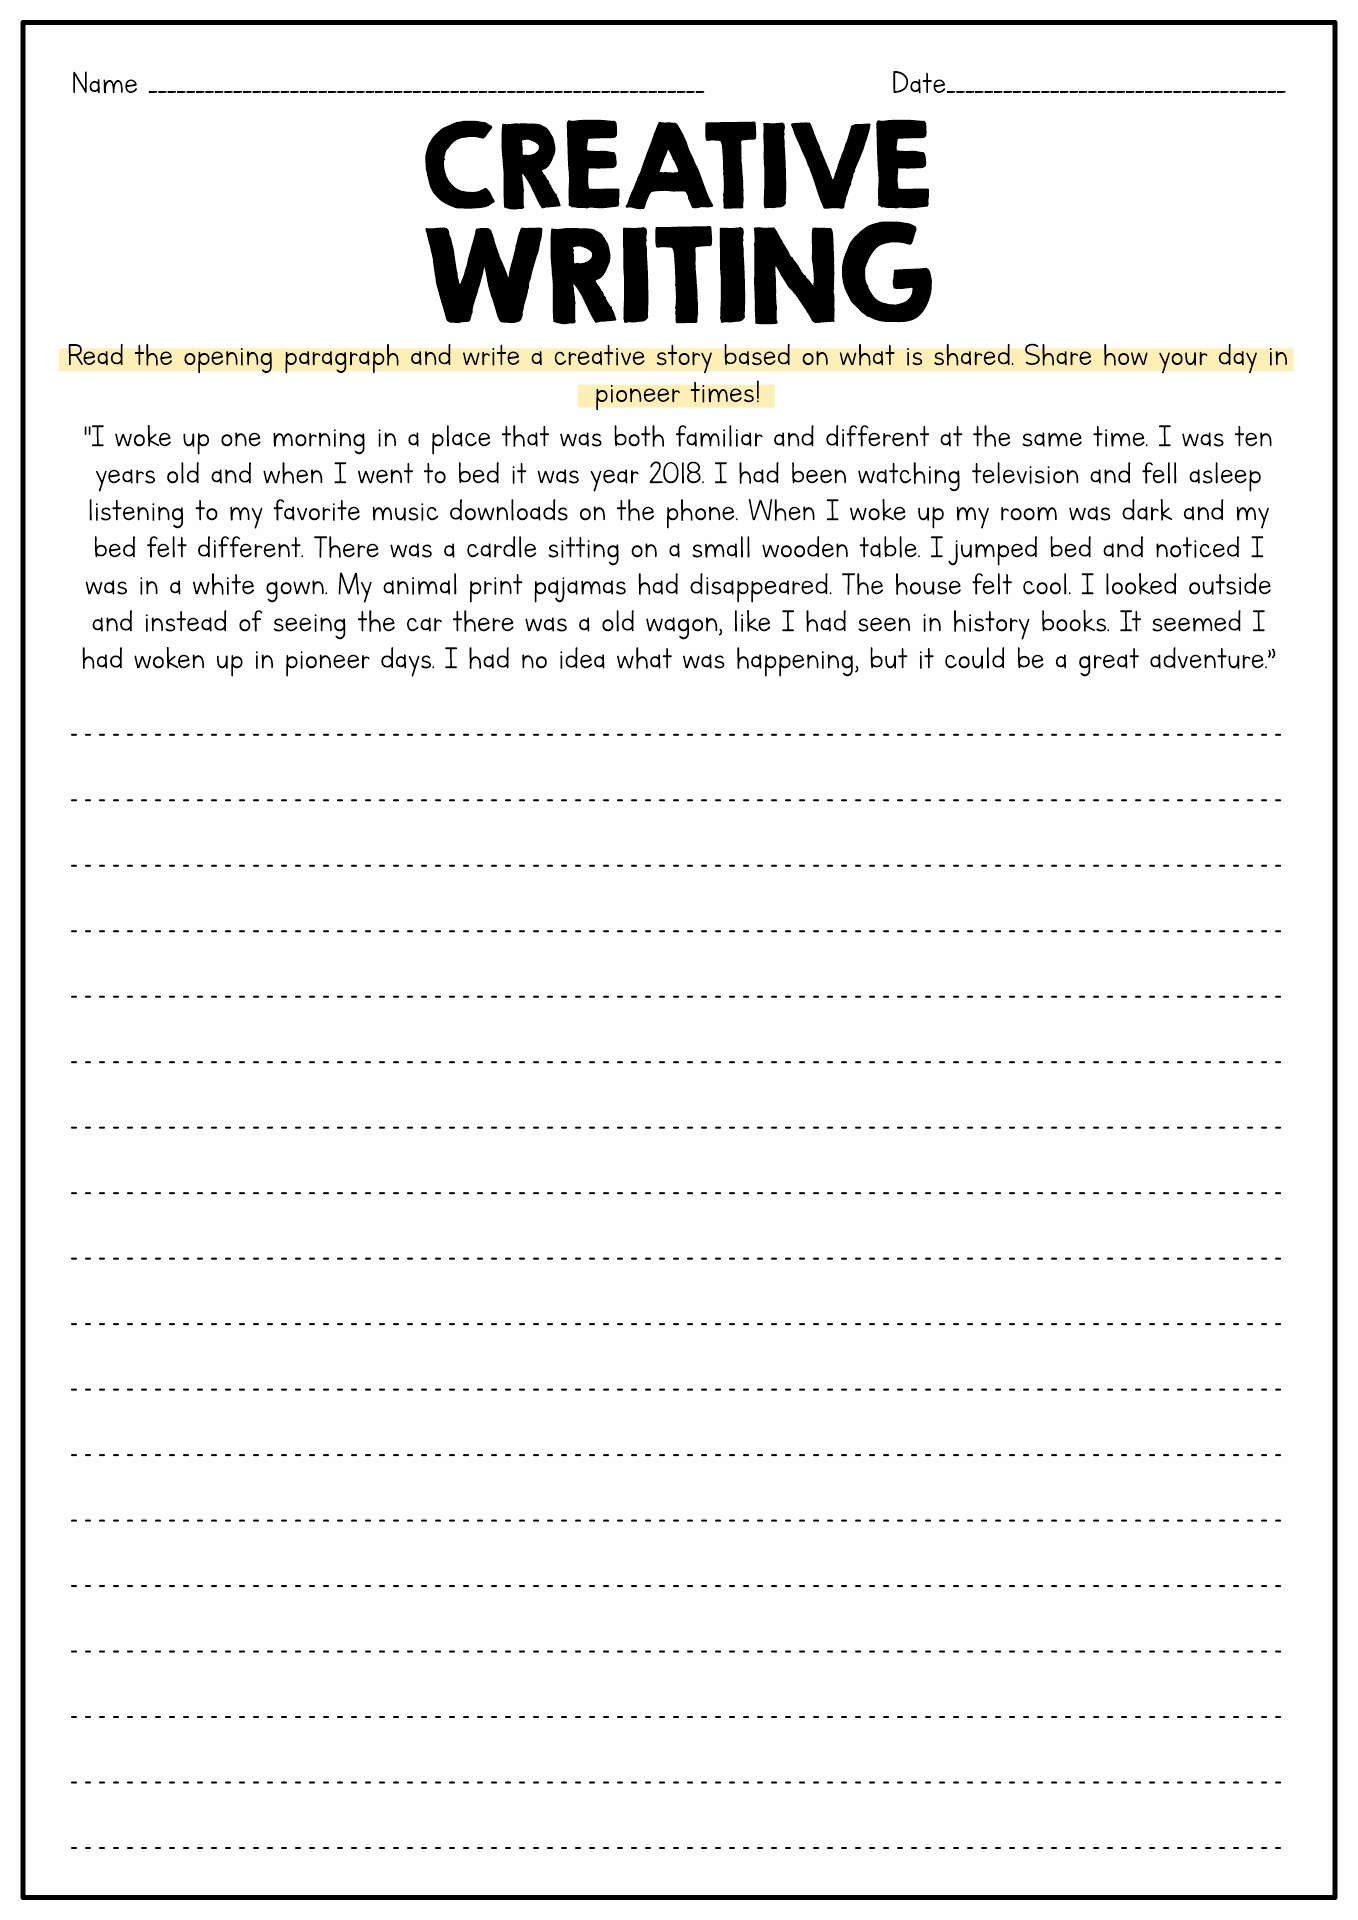 English Creative Writing Worksheets For Grade 3